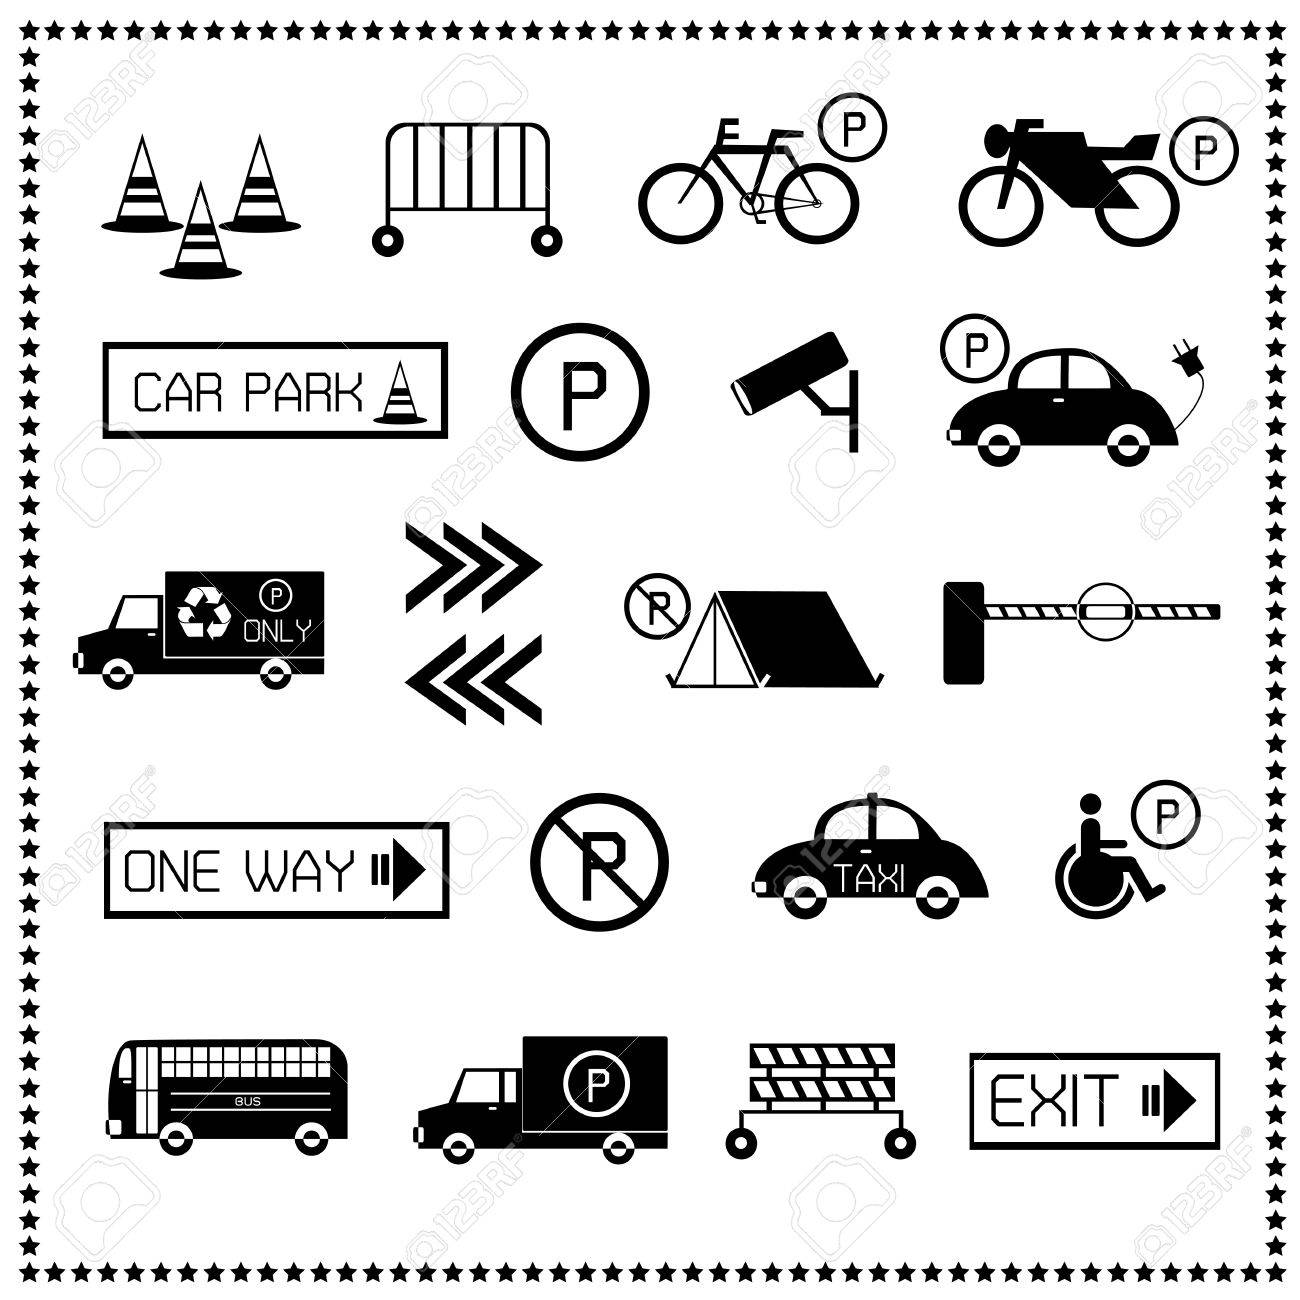 Set of car parking icons, Vector illustration Stock Vector - 18457816